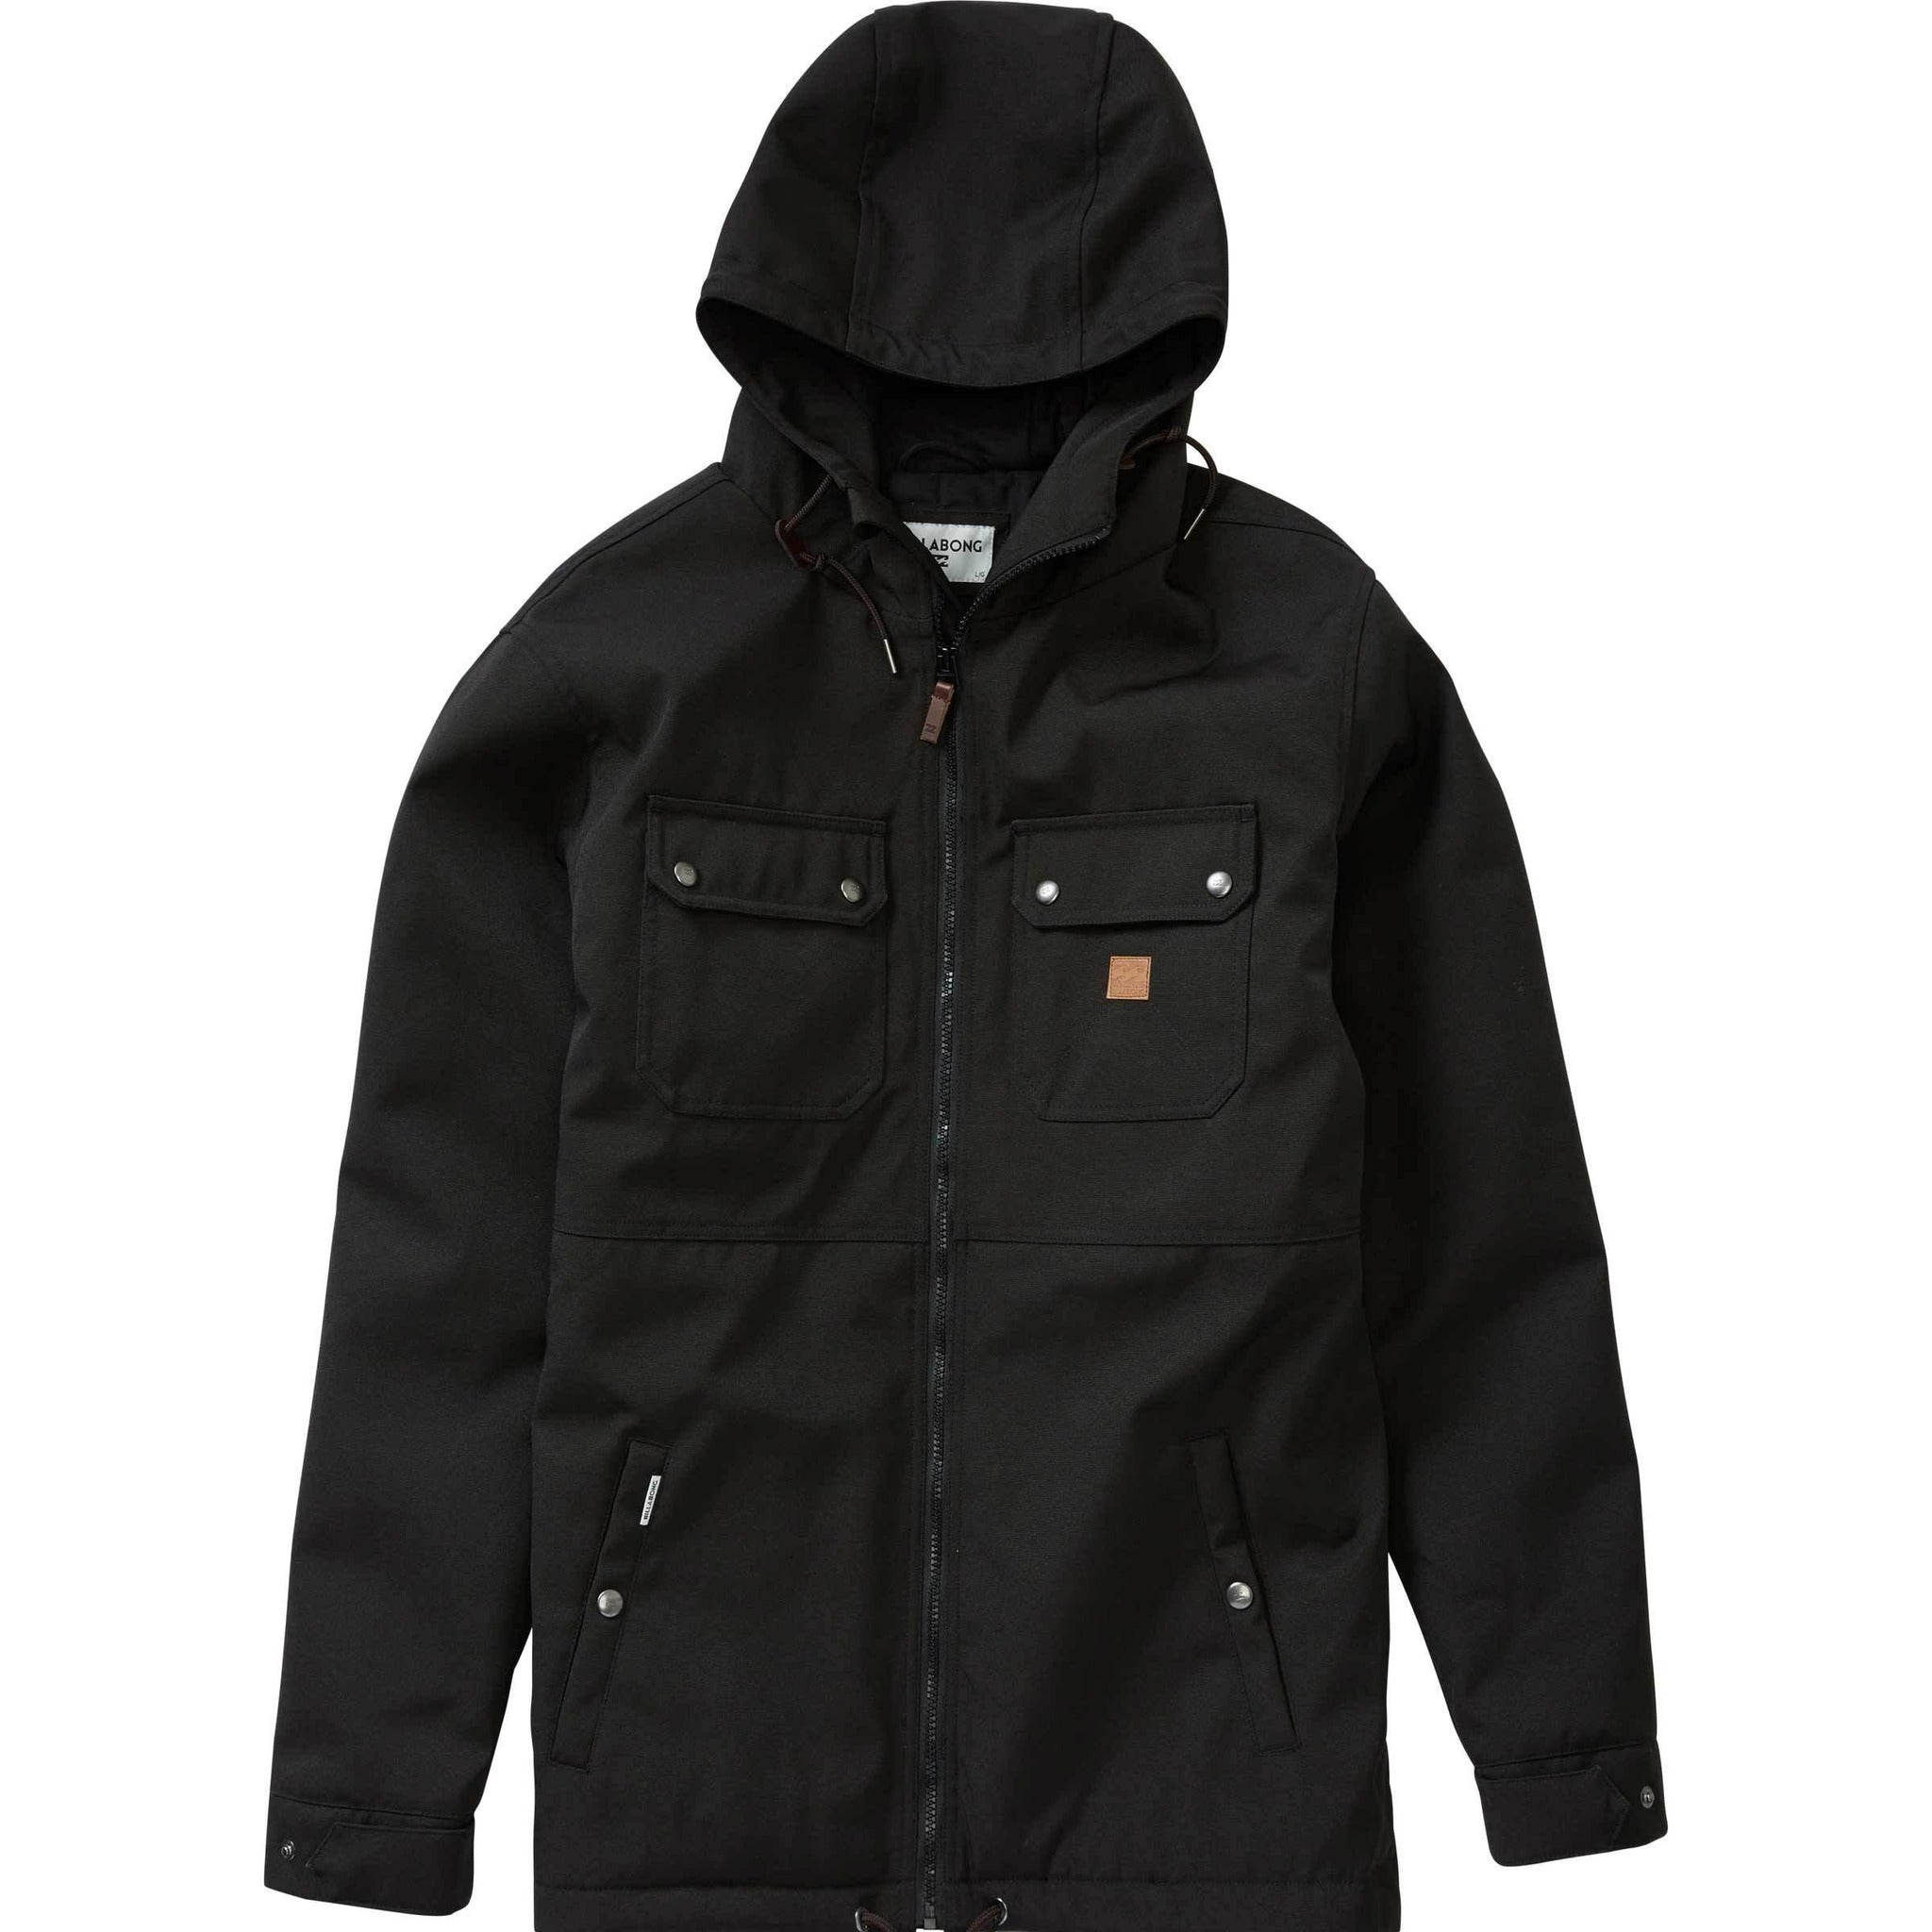 Billabong Men's Matt Jacket - 88 Gear